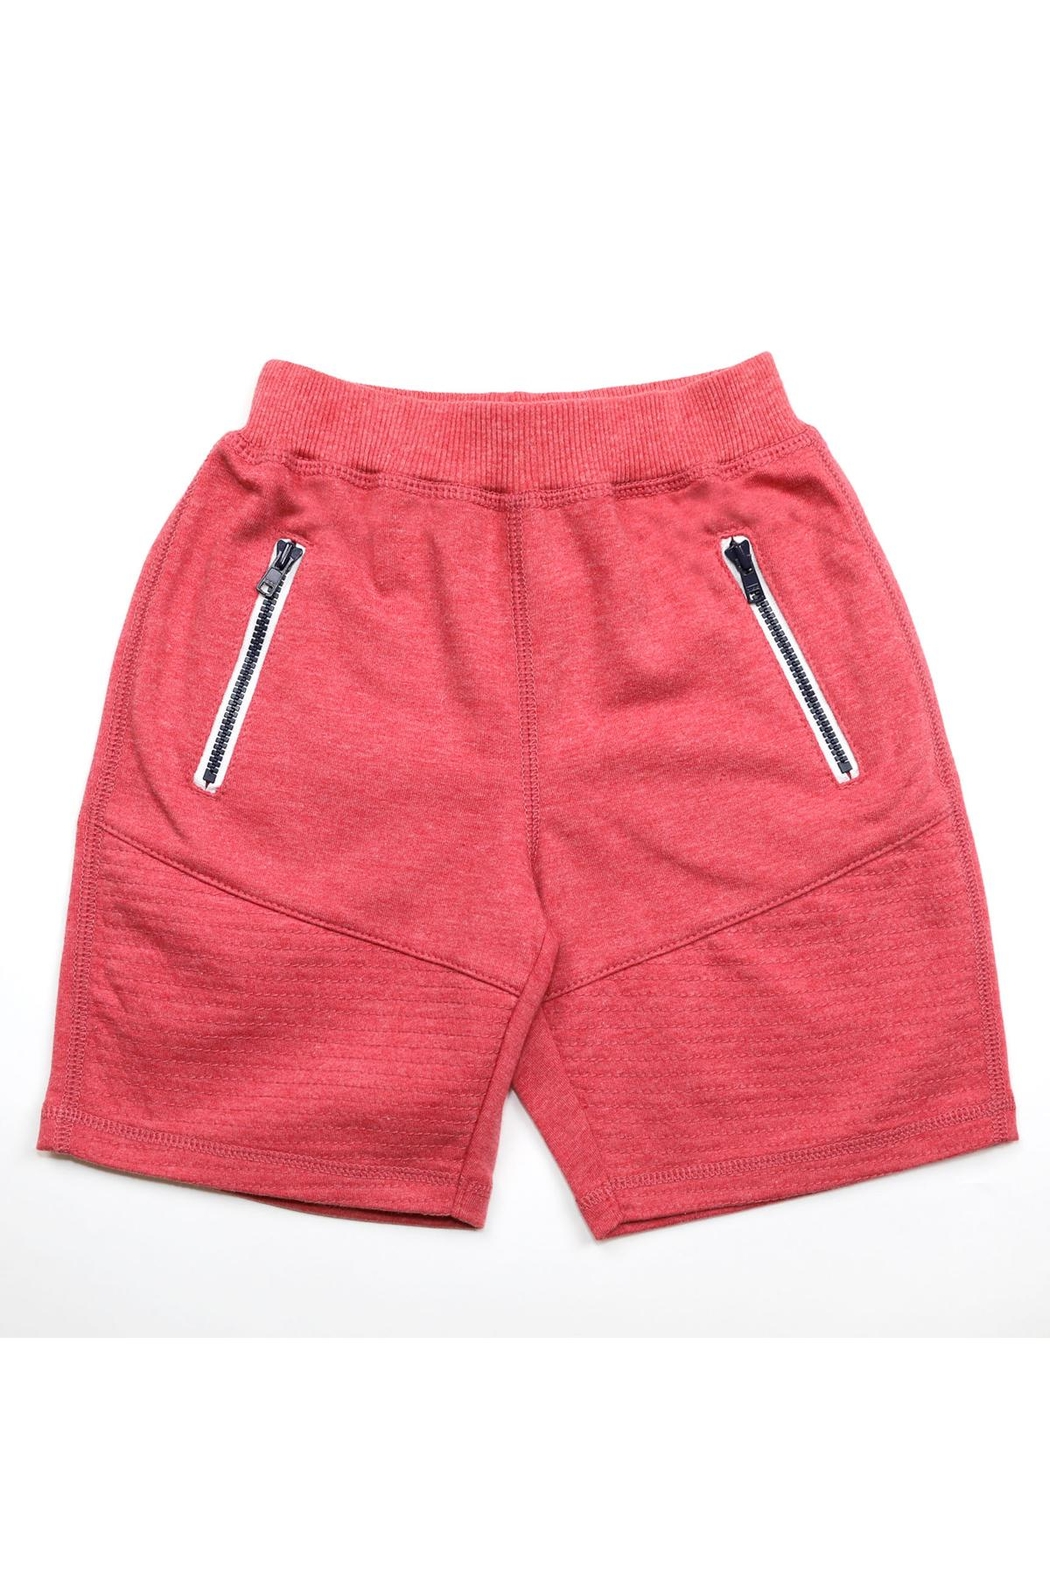 Kapital K Tropical Punch Short - Front Cropped Image